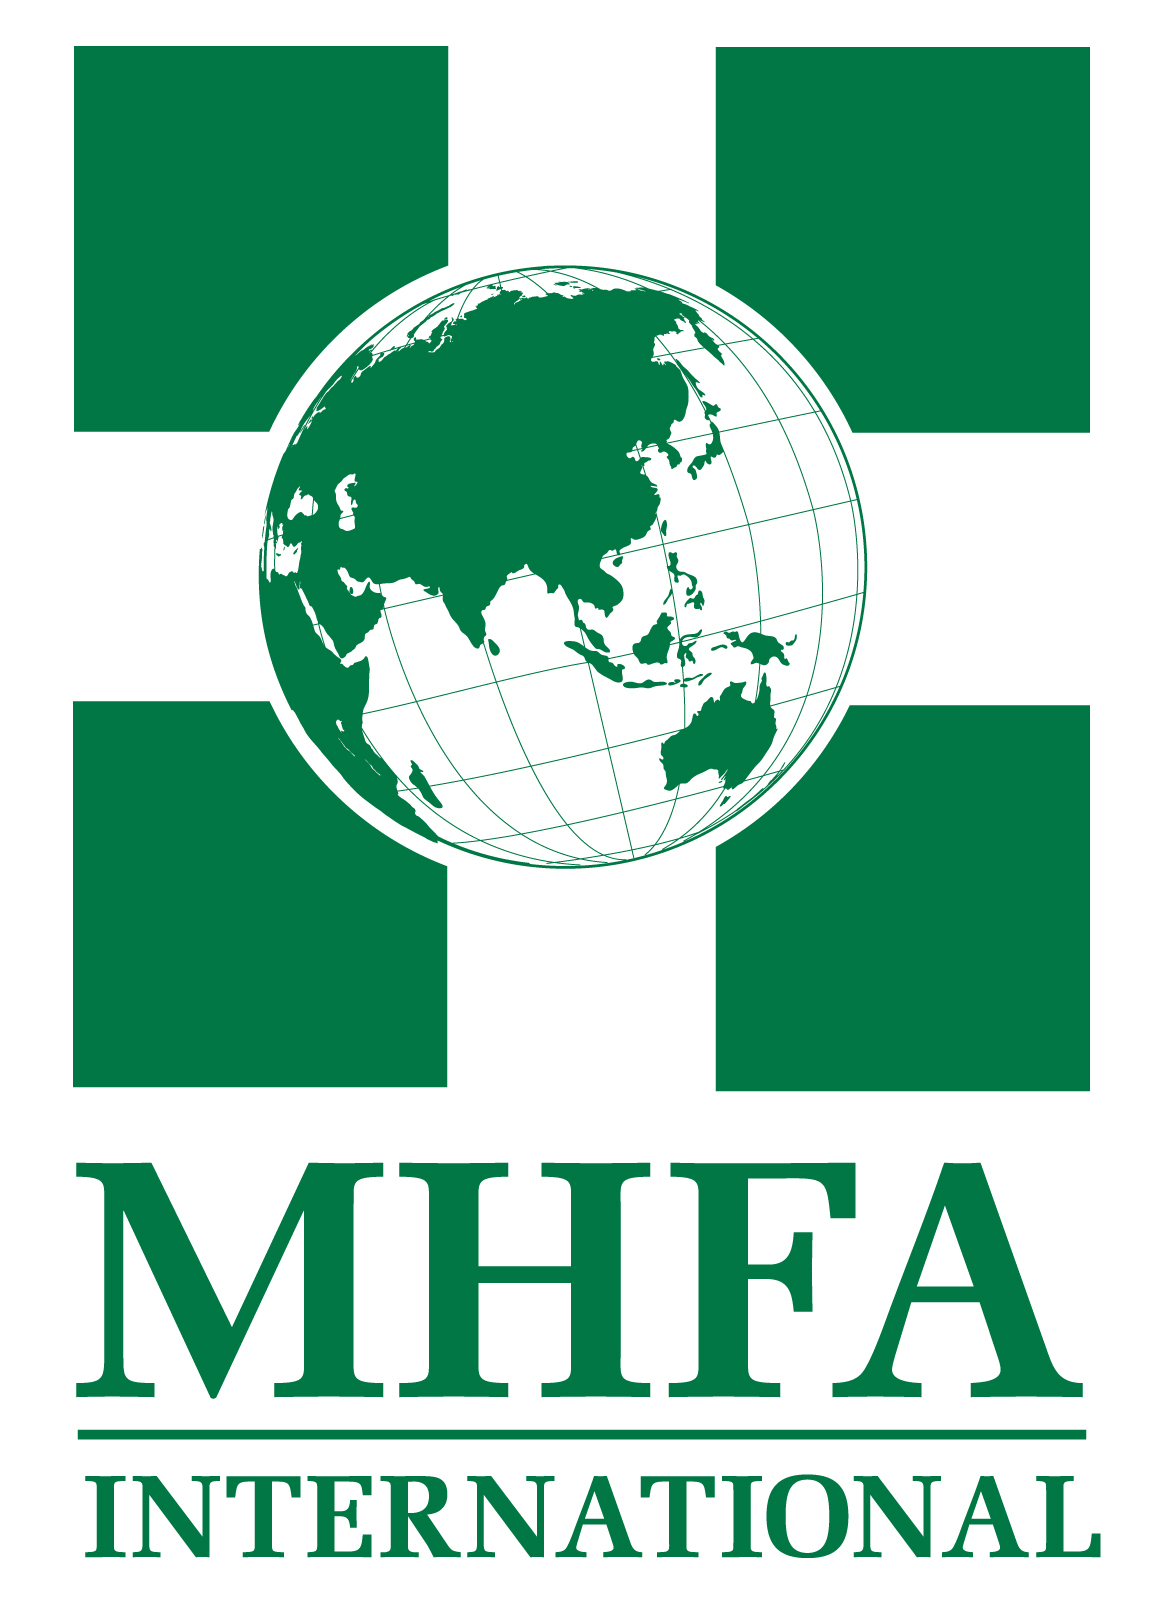 mhfa_international_logo_colored